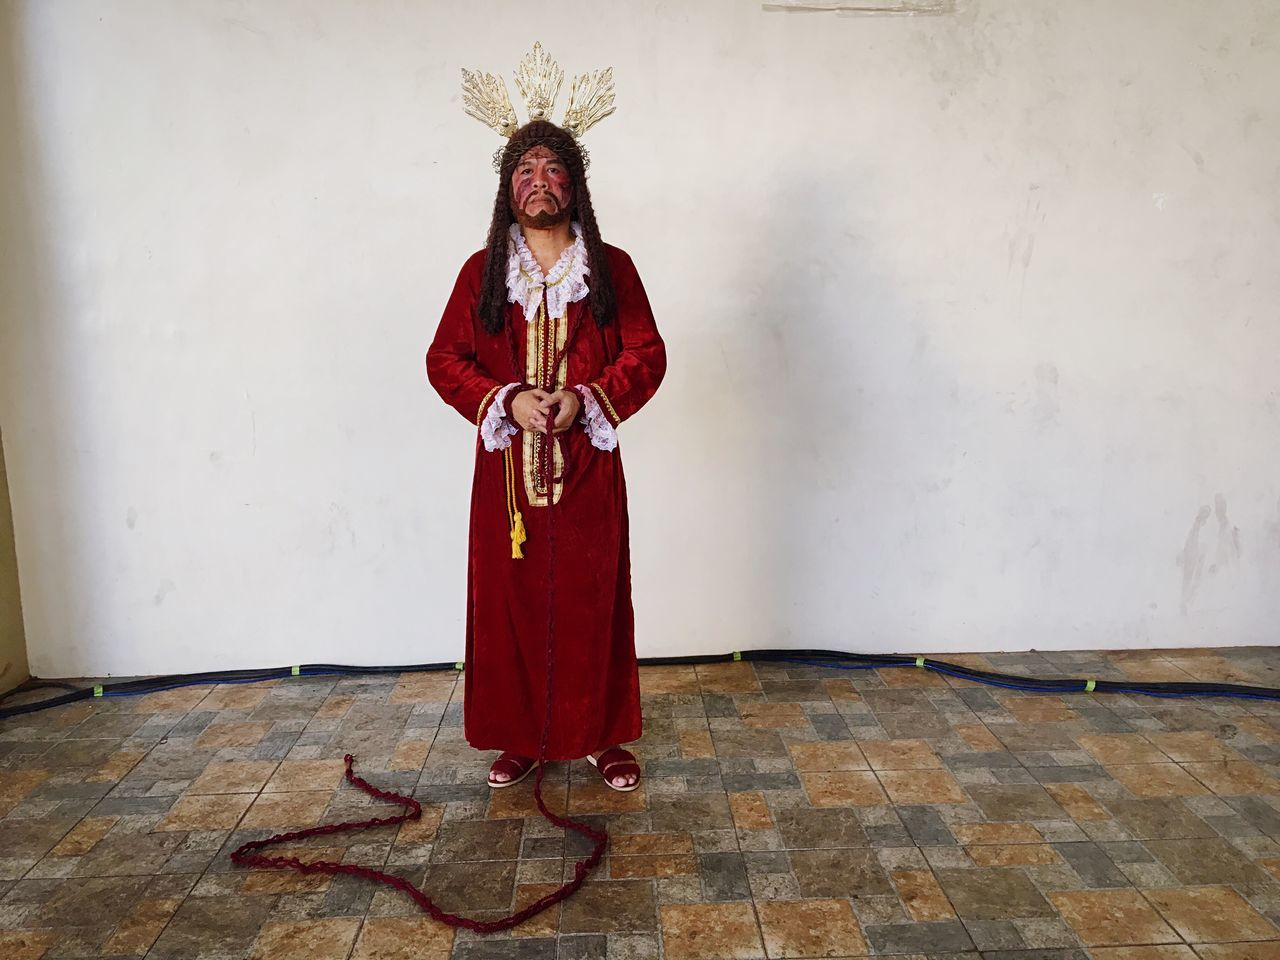 """Jun Taytay, 59, portrays Jesus Christ in an annual performance called """"cenaculo"""", a performance to commemorate the passion and death of Jesus Christ on Good Friday, in Malibay, Metro Manila. Jun is the 4th person to portray Jesus since 1902 in the neighbourhood. He has been doing this for 21 years as a personal devotion. Full Length Indoors  One Person Real People Standing Stage Costume Day People EyeEm Best Shots Pasay City Street Play Arts Culture And Entertainment Manila Good Friday Philippines Holy Week Jesus Christ The Passion Of The Christ. Religion"""